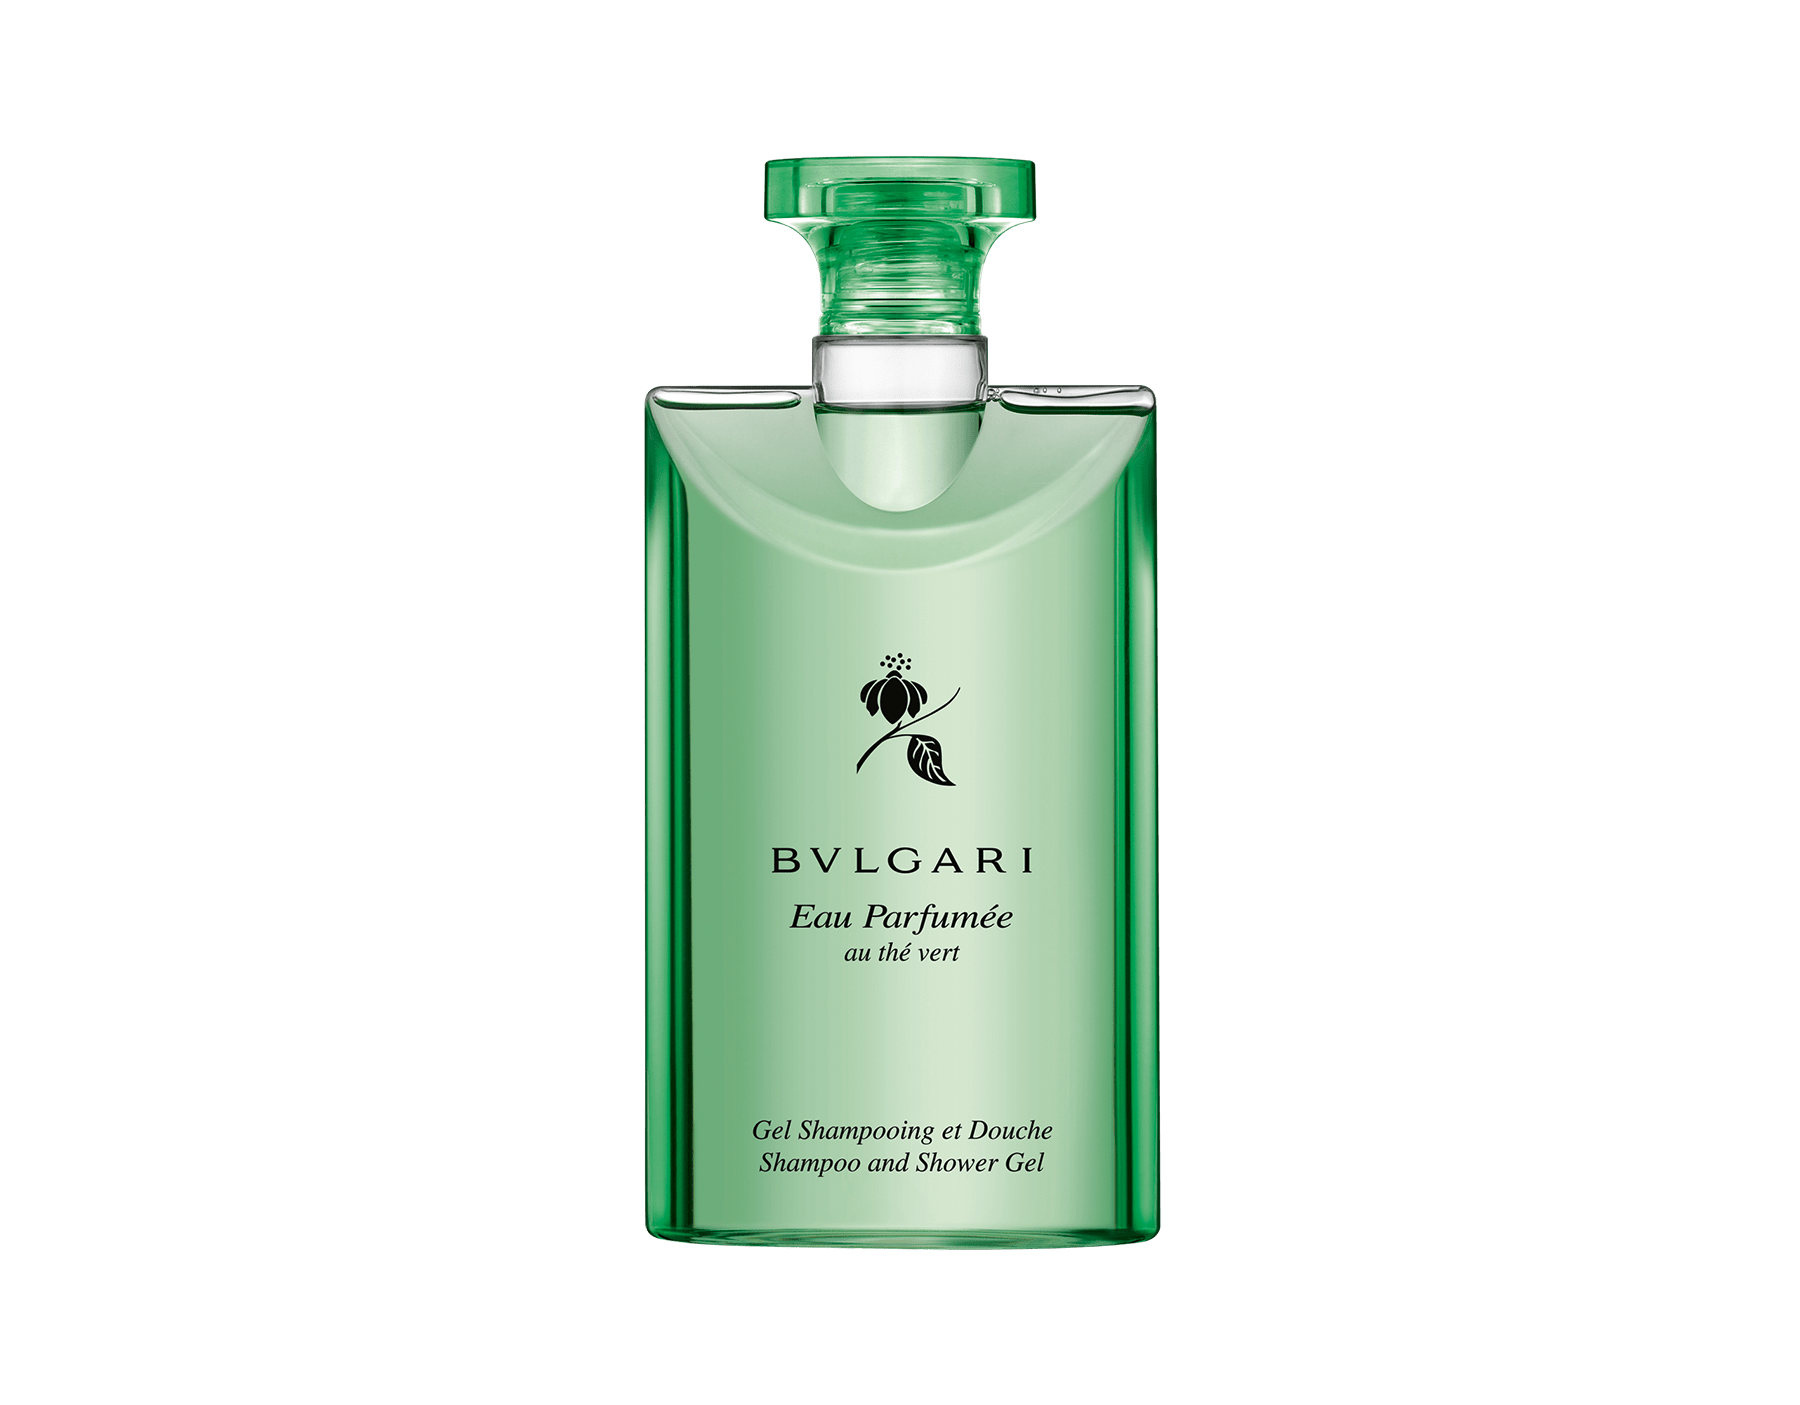 Eau Parfumee Au The Vert Shampoo Shower Gel 47191 Bvlgari